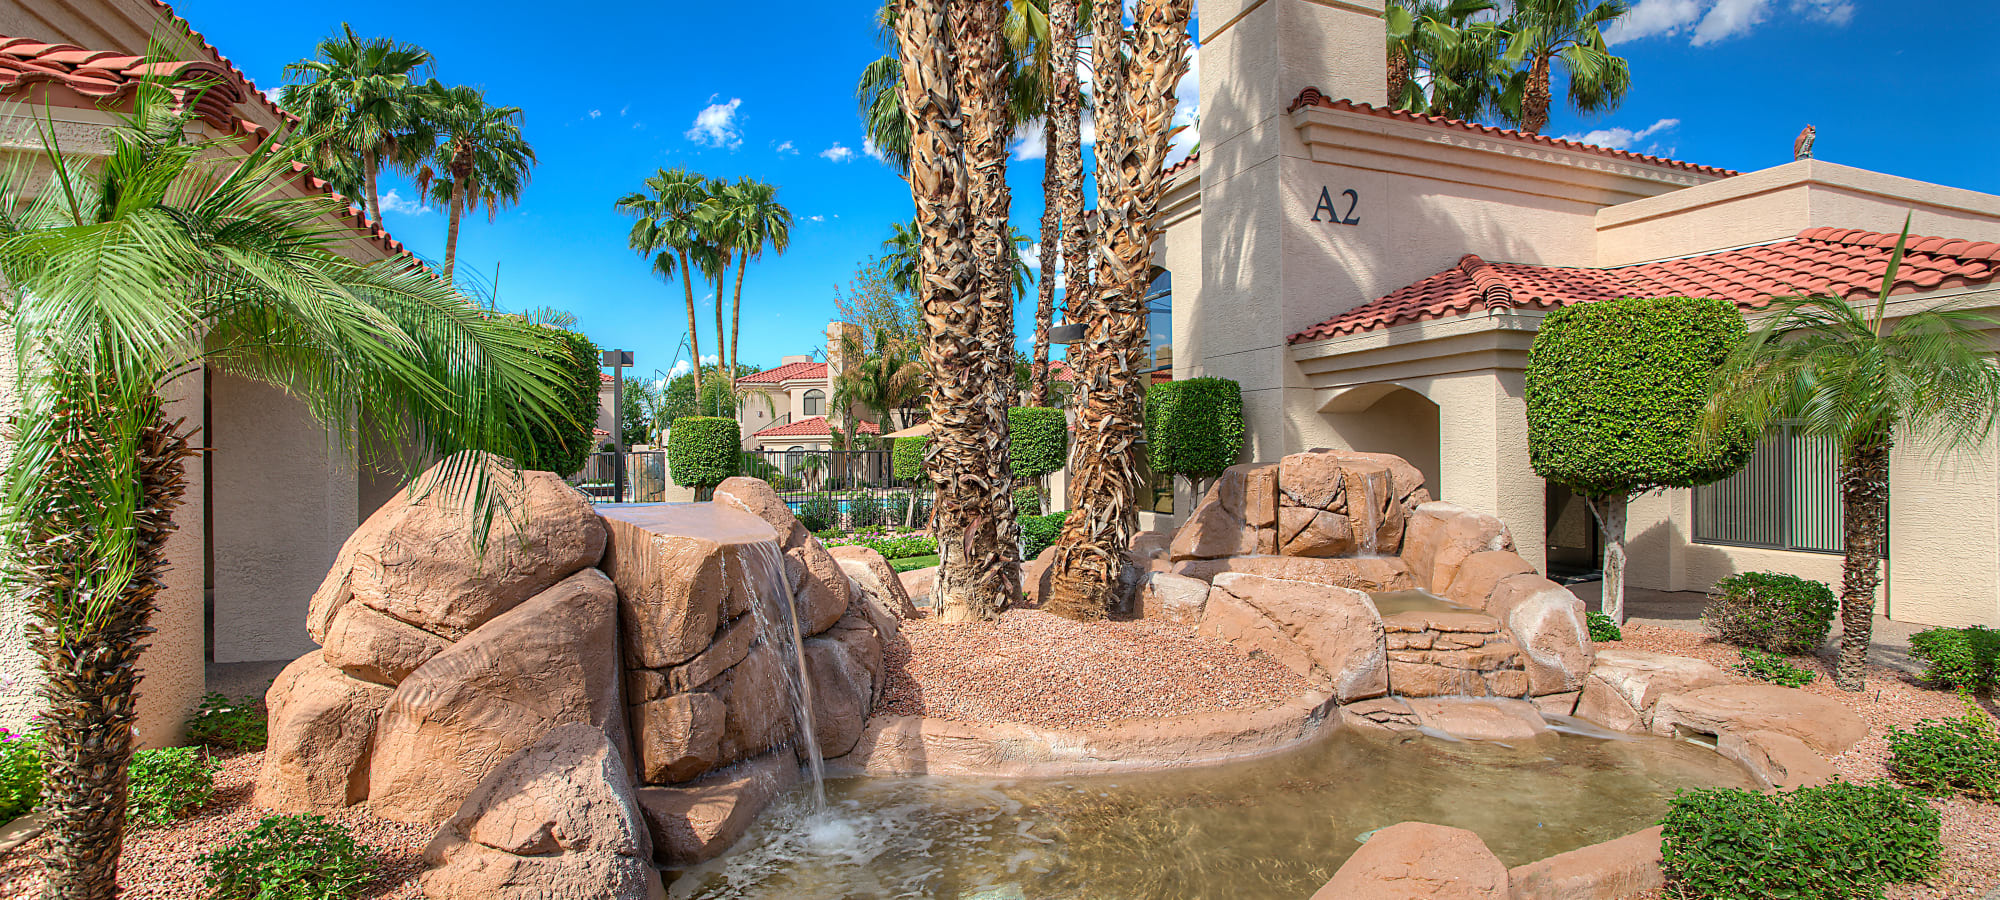 Landscaping and water feature at San Palmilla in Tempe, Arizona